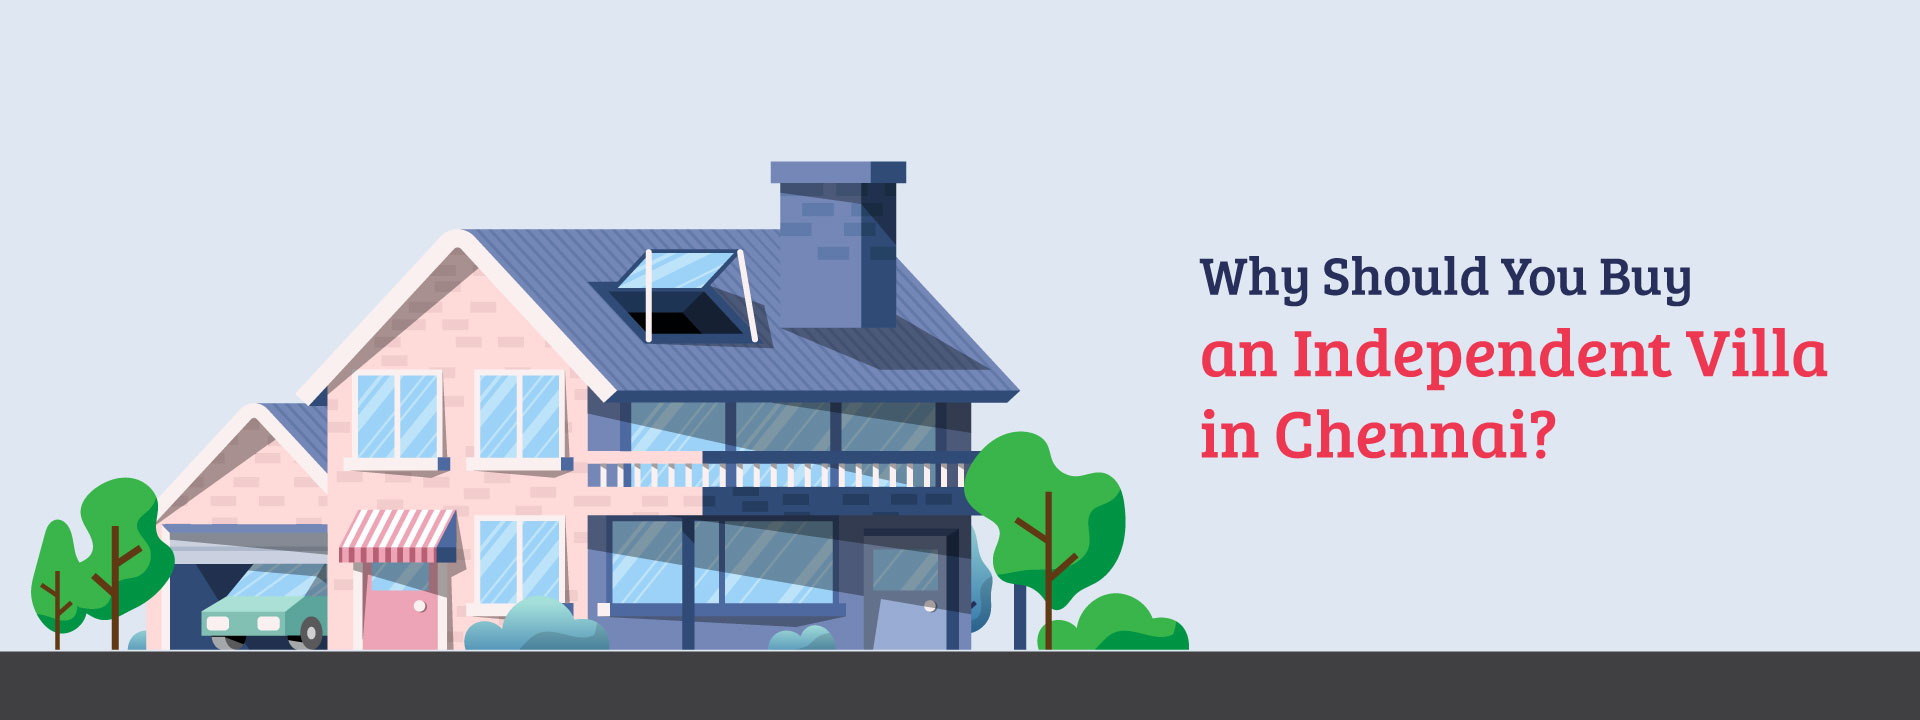 Why Should You Buy an Independent Villa in Chennai?